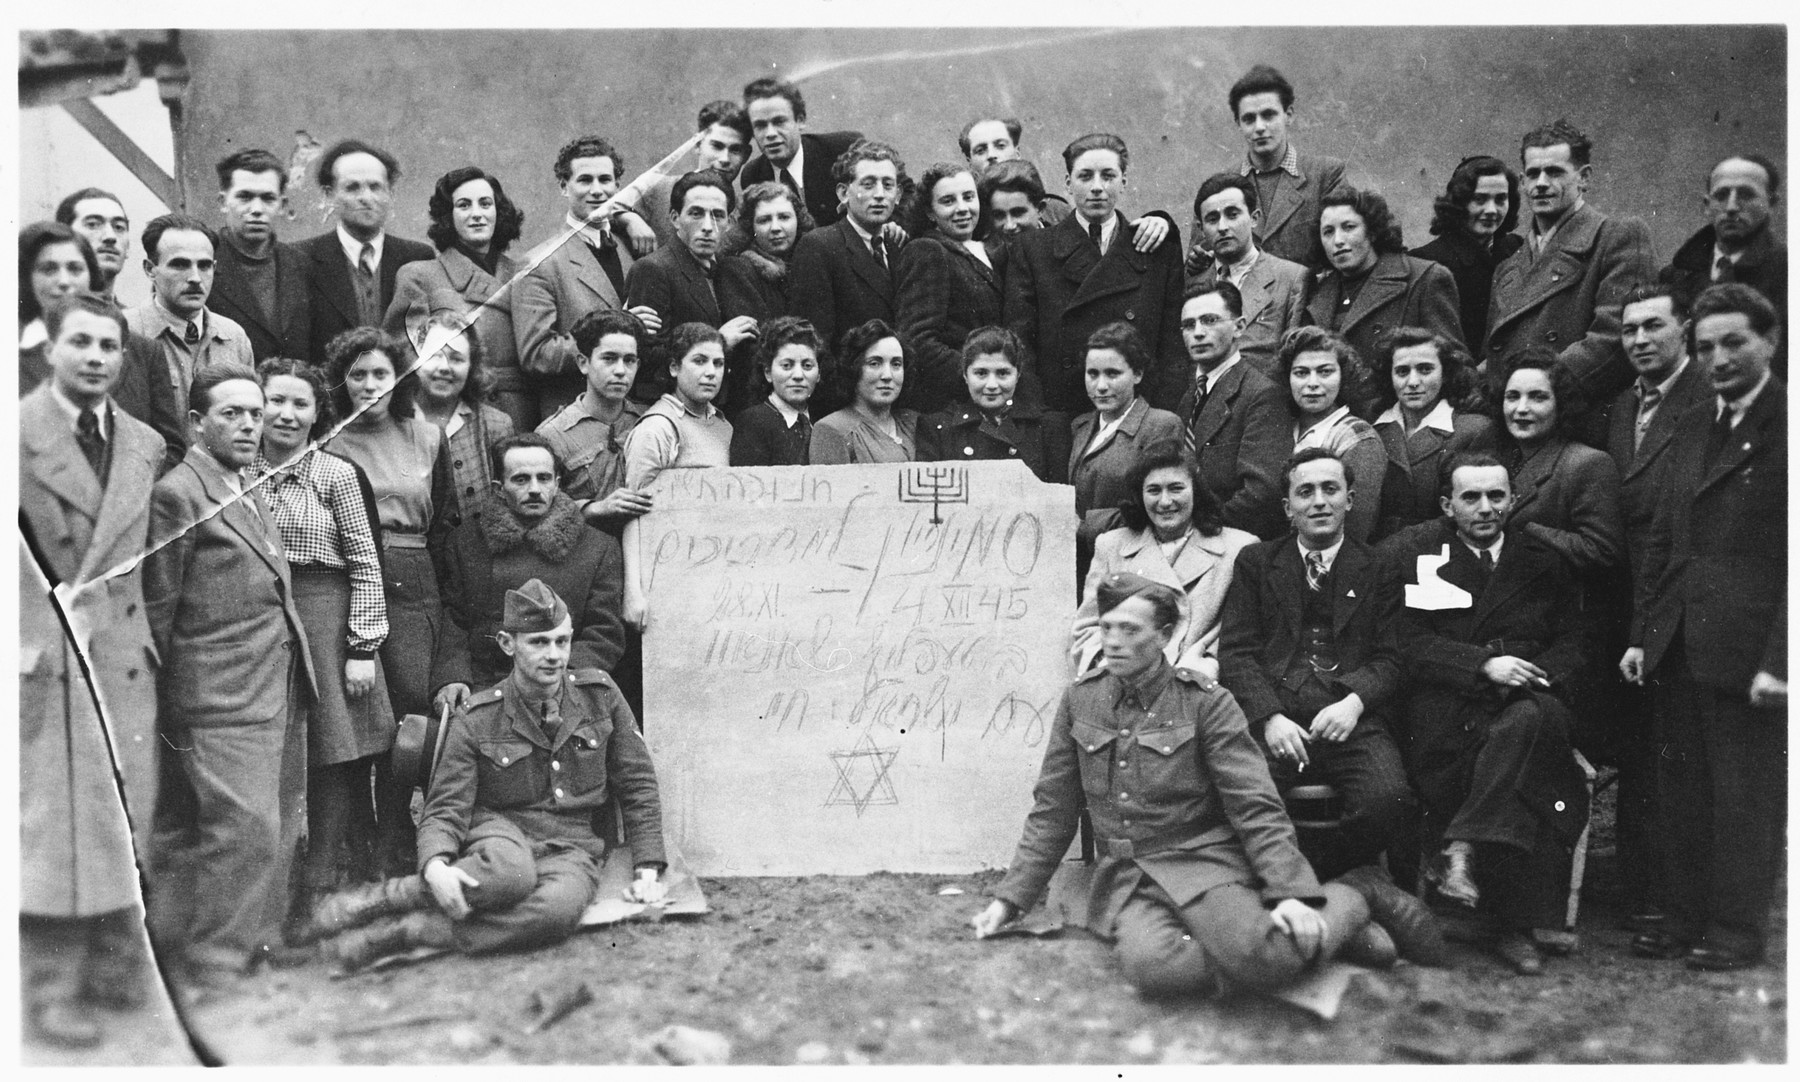 Group portrait of Jewish DP youth posing with a sign at a seminar of the Dror-Hehalutz Zionist youth movement in Czechoslovakia.  Among those pictured is Rahel Berger (second row from the front, fifth from the right).